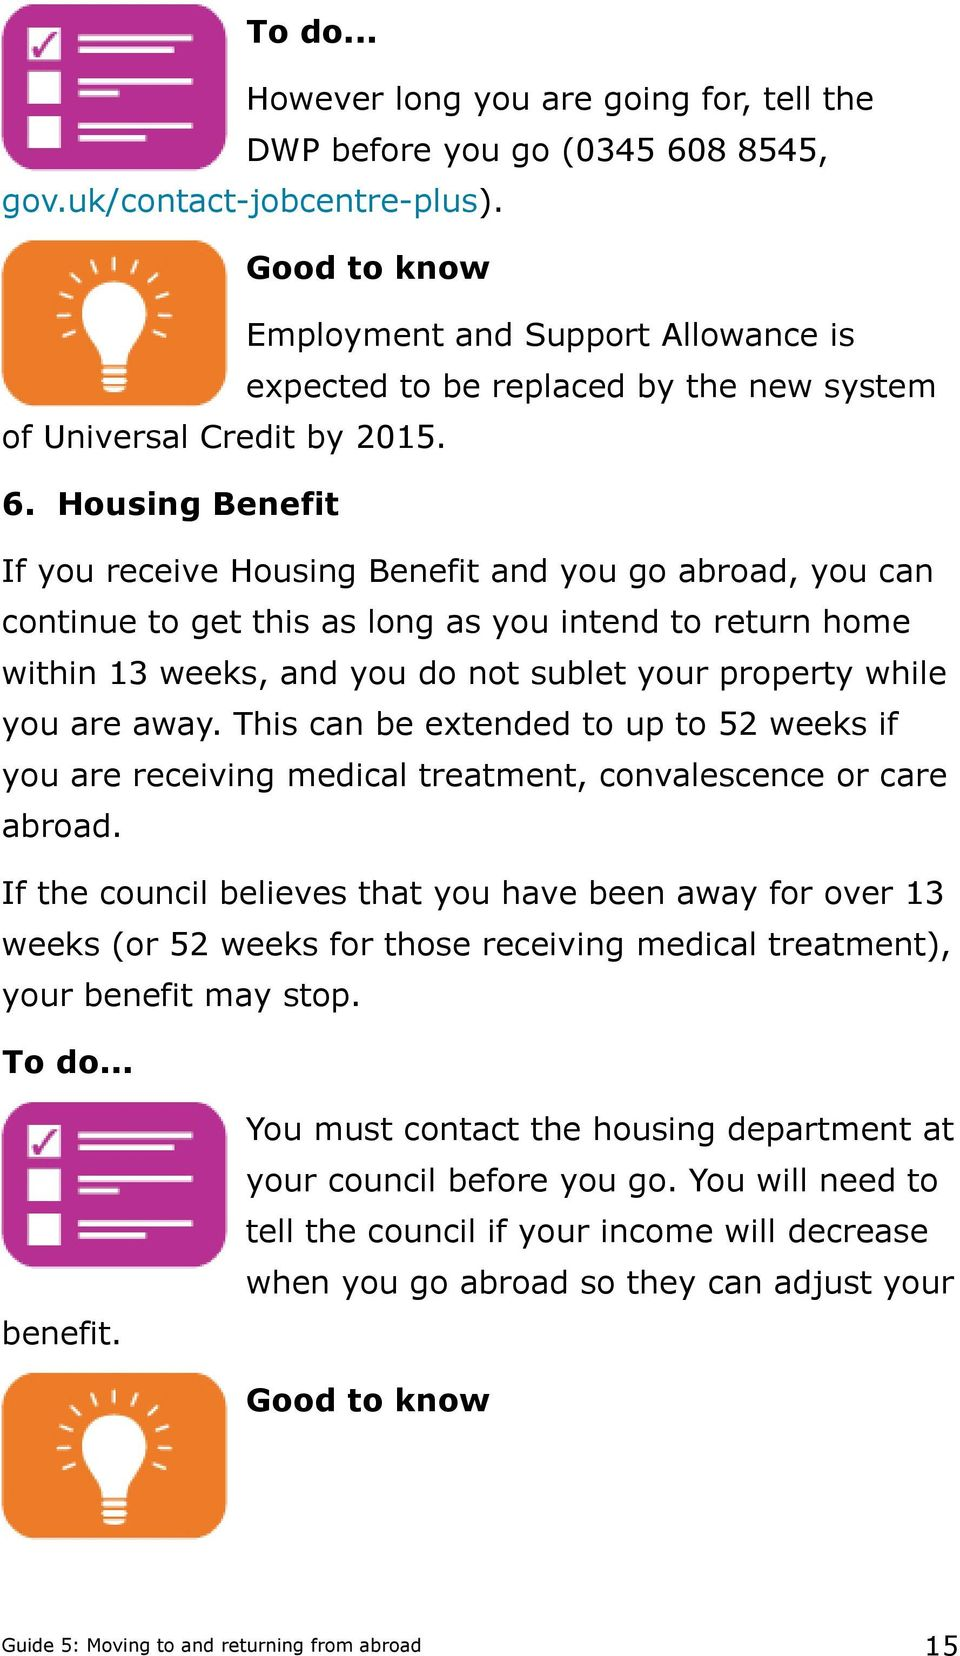 Housing Benefit If you receive Housing Benefit and you go abroad, you can continue to get this as long as you intend to return home within 13 weeks, and you do not sublet your property while you are